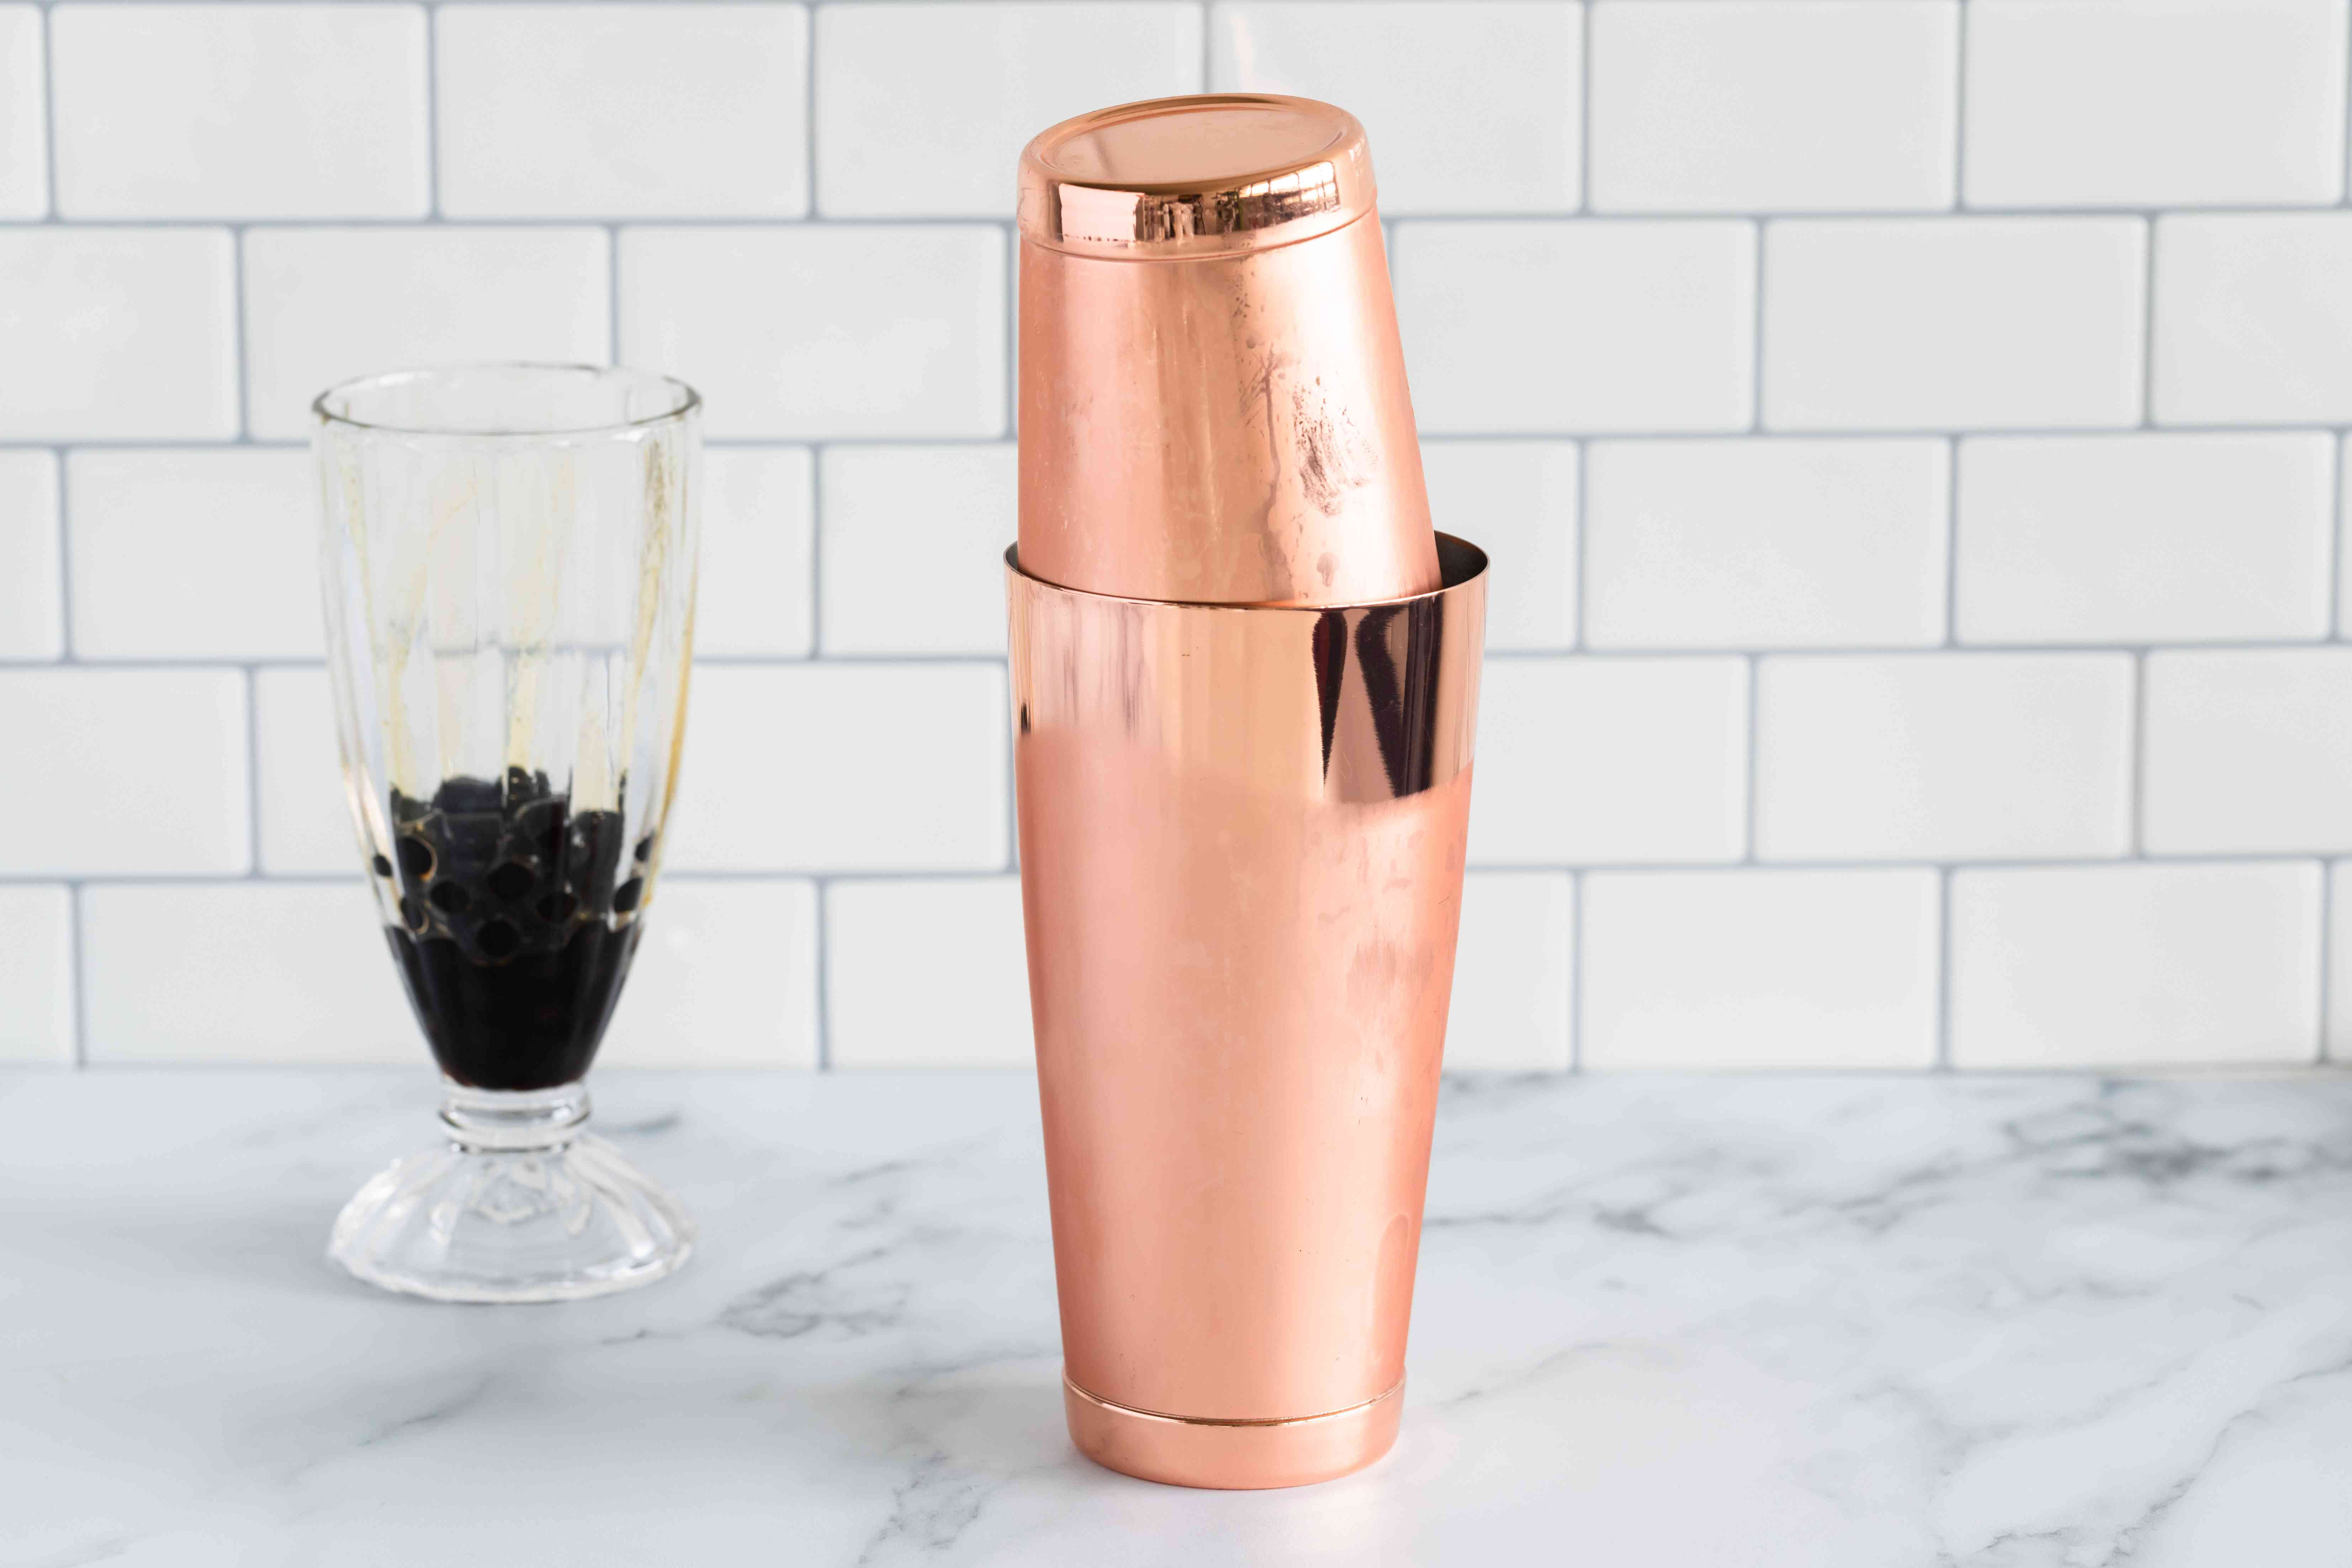 Combine milk and syrup in cocktail shaker